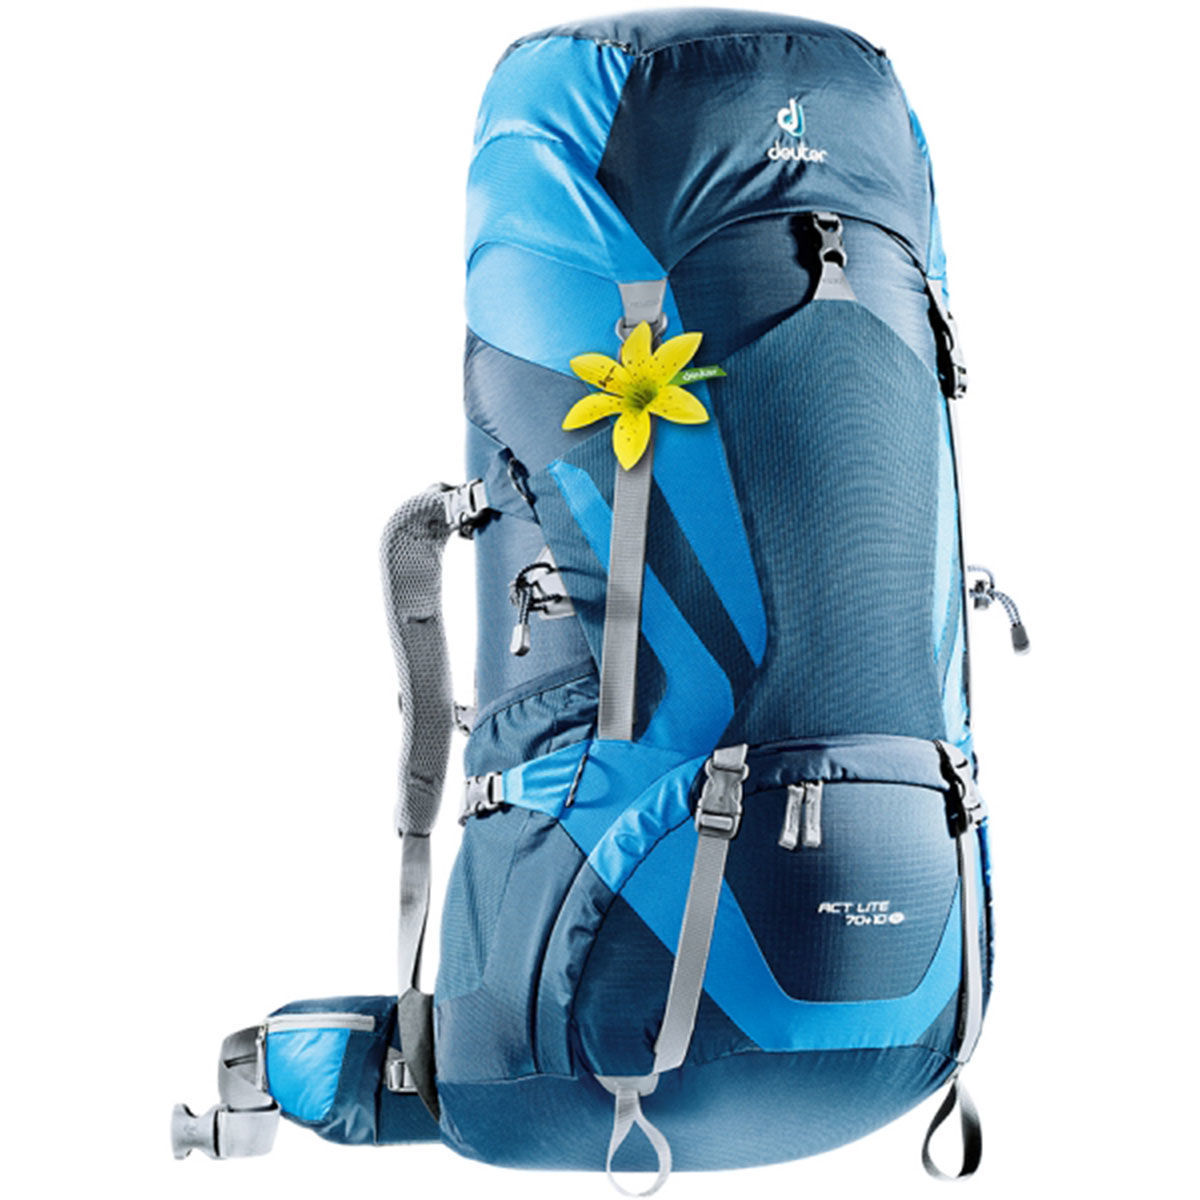 photo: Deuter ACT Lite 70 + 10 SL expedition pack (70l+)